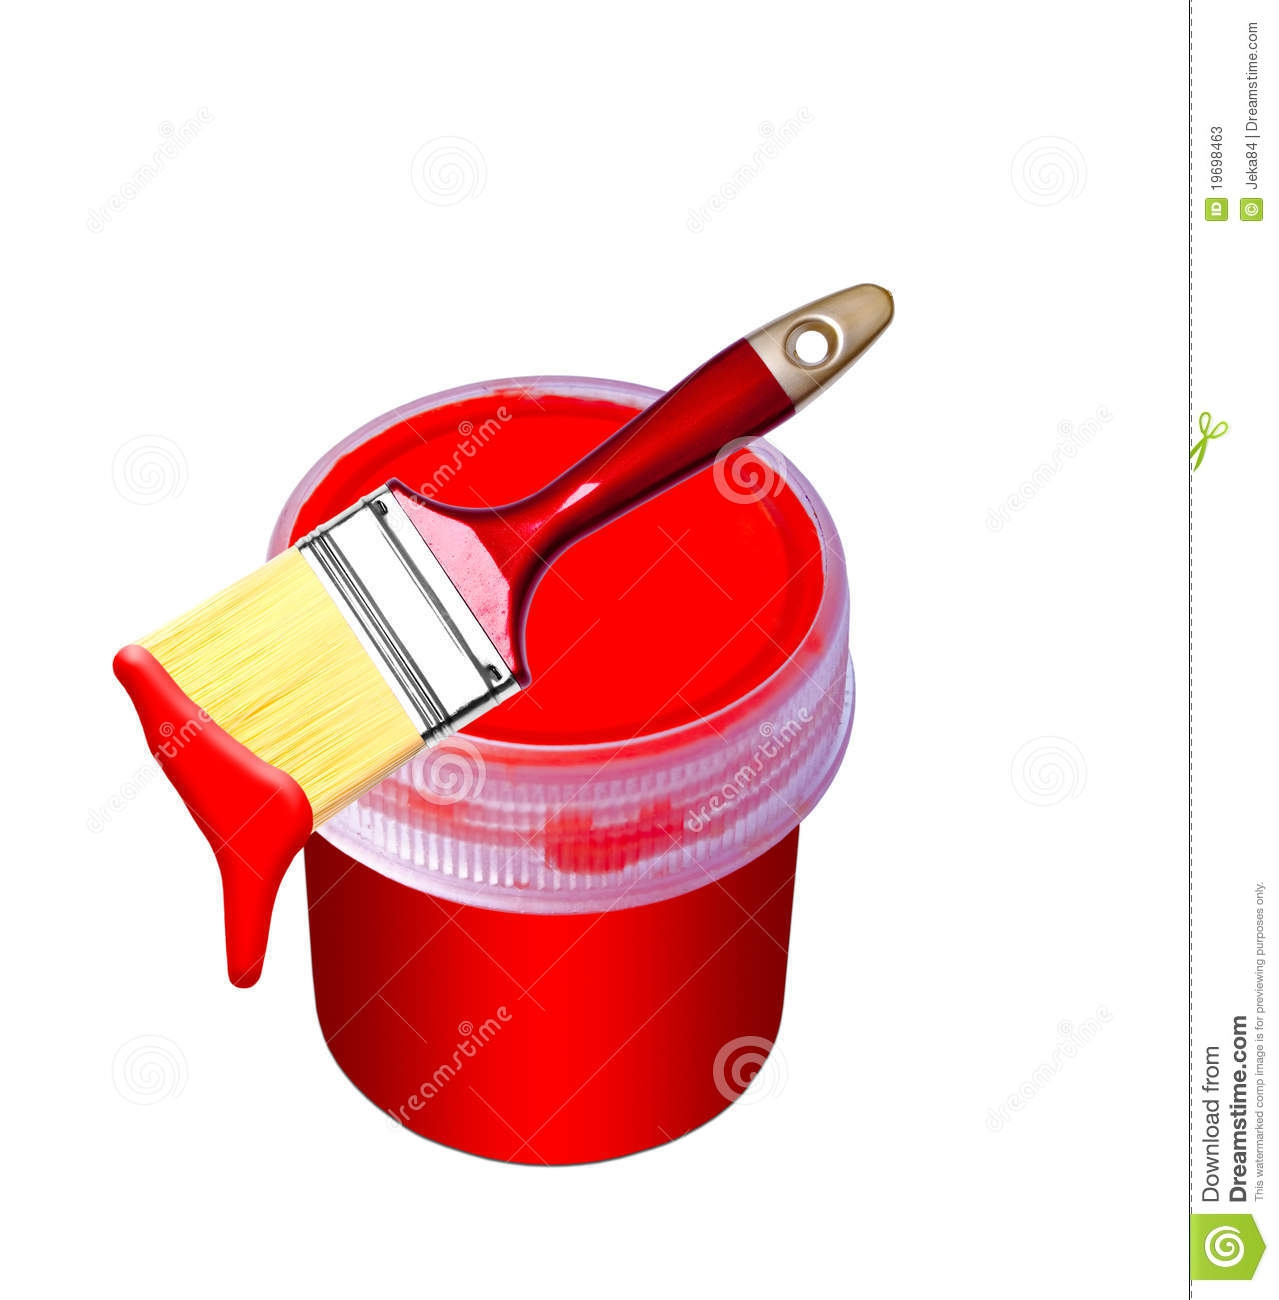 Embed codes for your. Bucket clipart paint brush